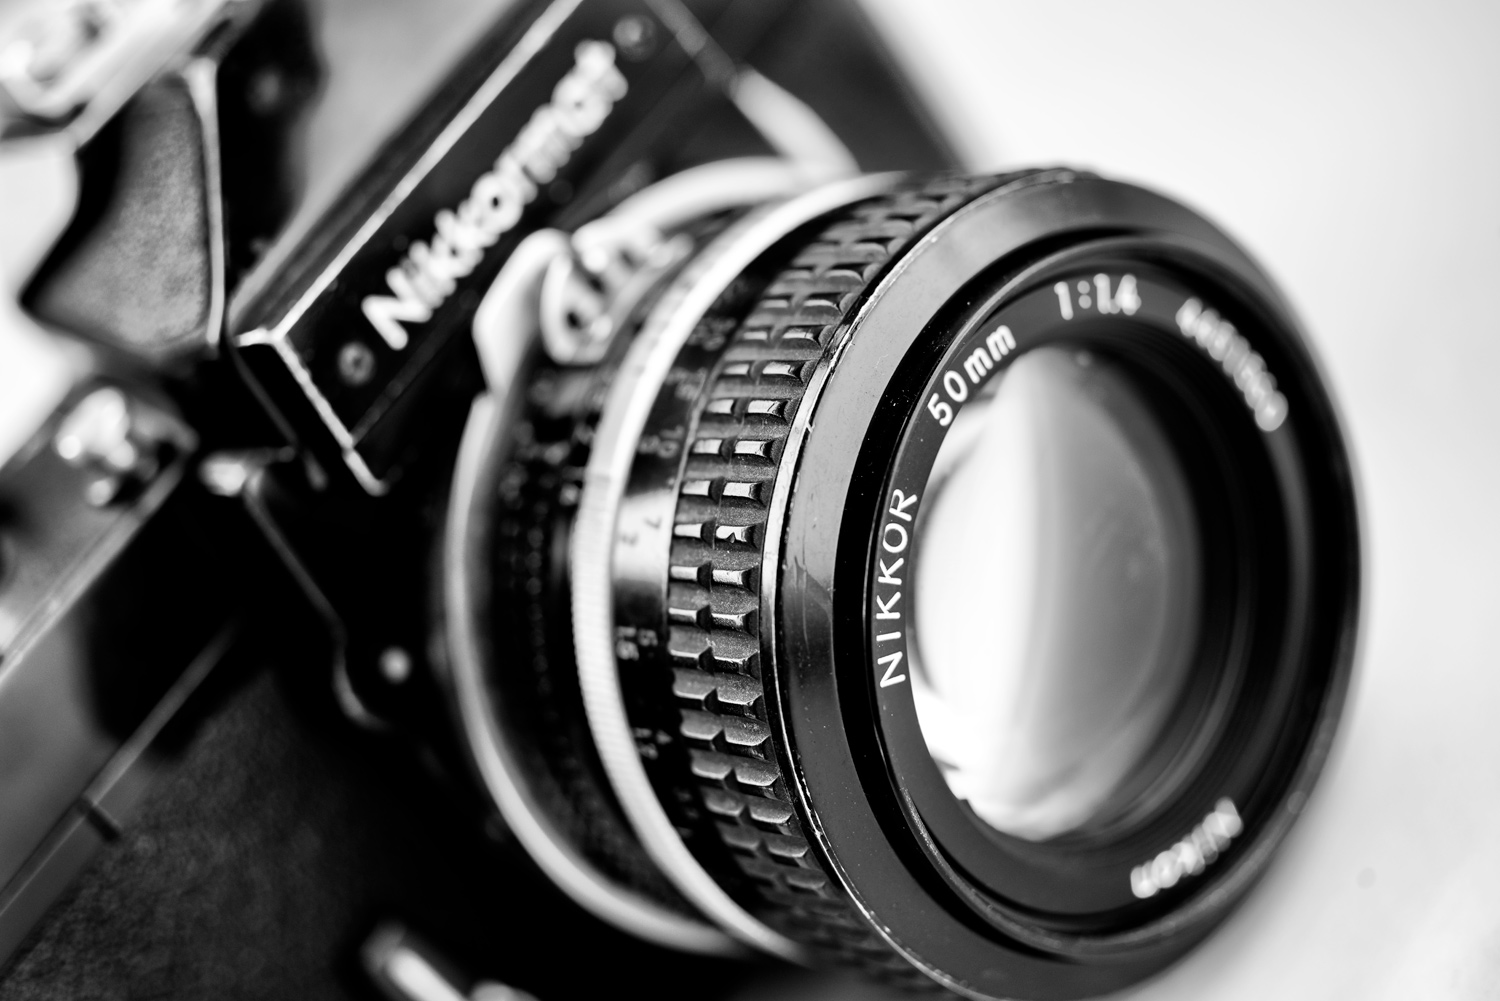 Nikkormat FTN with 50mm lens - dPS Writer's Favorite Lens: Why I Love My 35mm F1.4